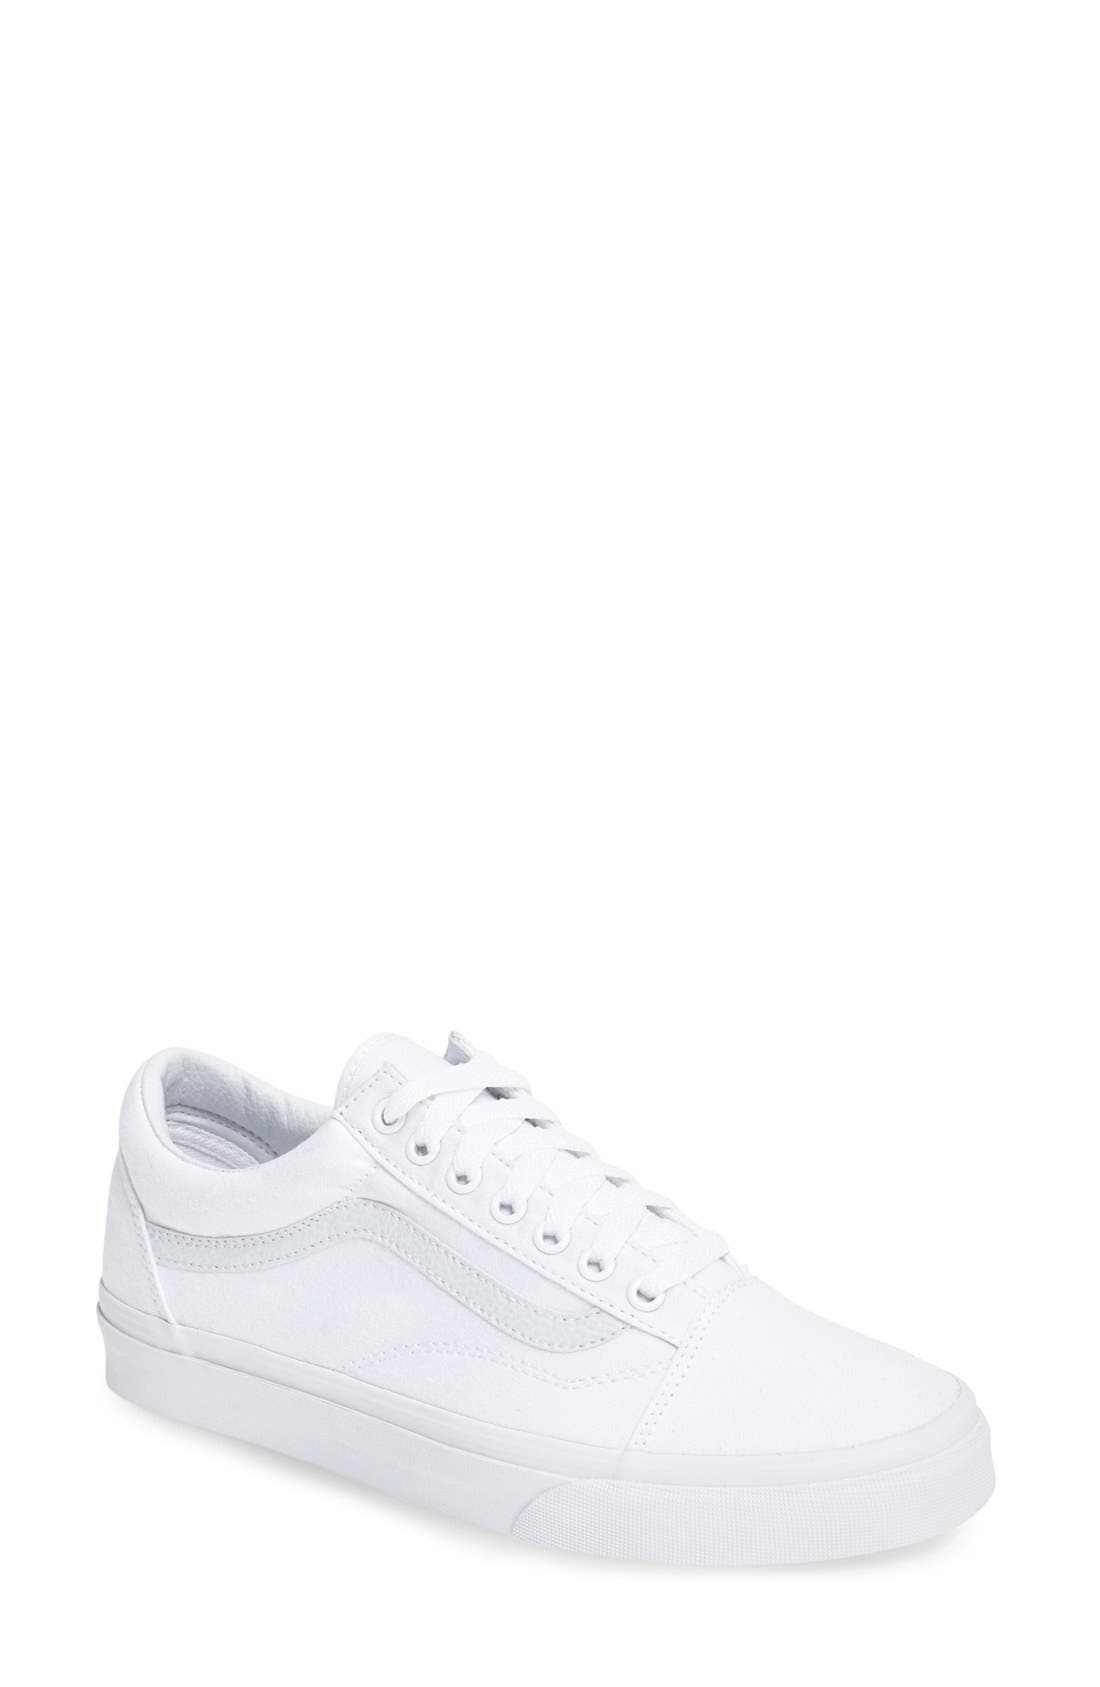 Alternate Image 1 Selected - Vans 'Old Skool' Sneaker (Men)